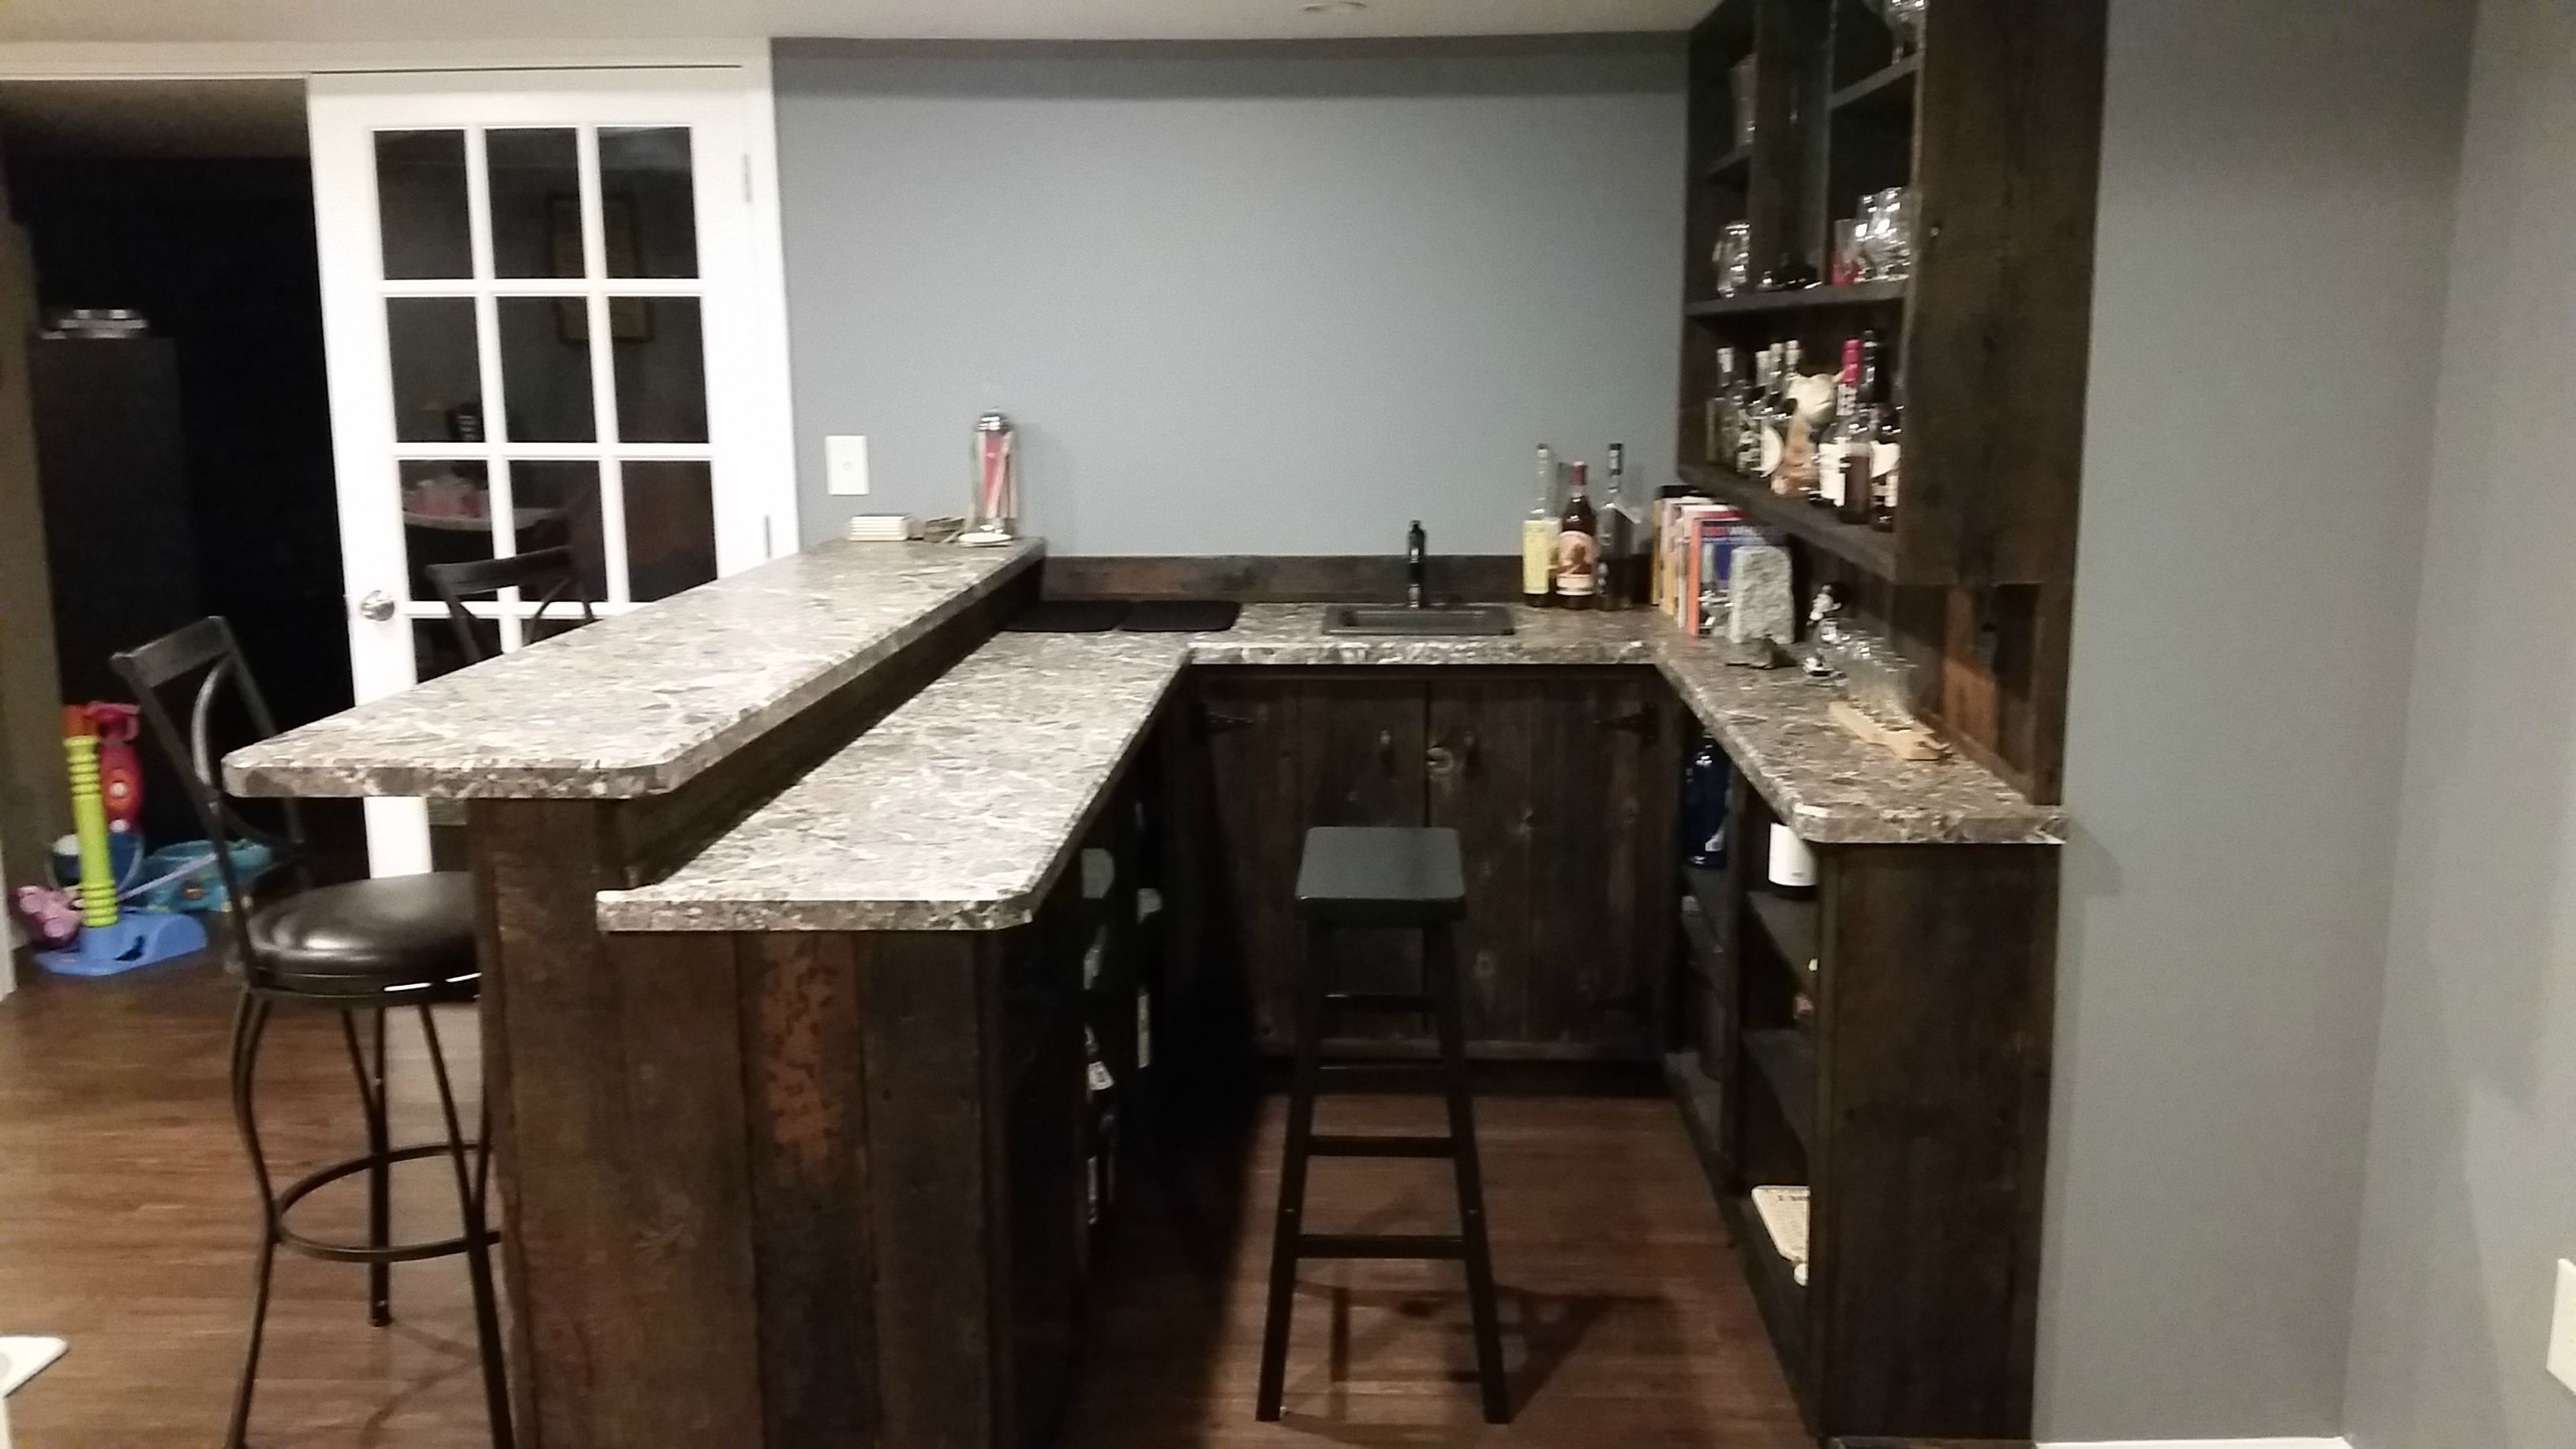 How Much Space Between Counter And Bar Community Beeradvocate In 2020 Minimal Kitchen Design Home Bar Counter Basement Bar